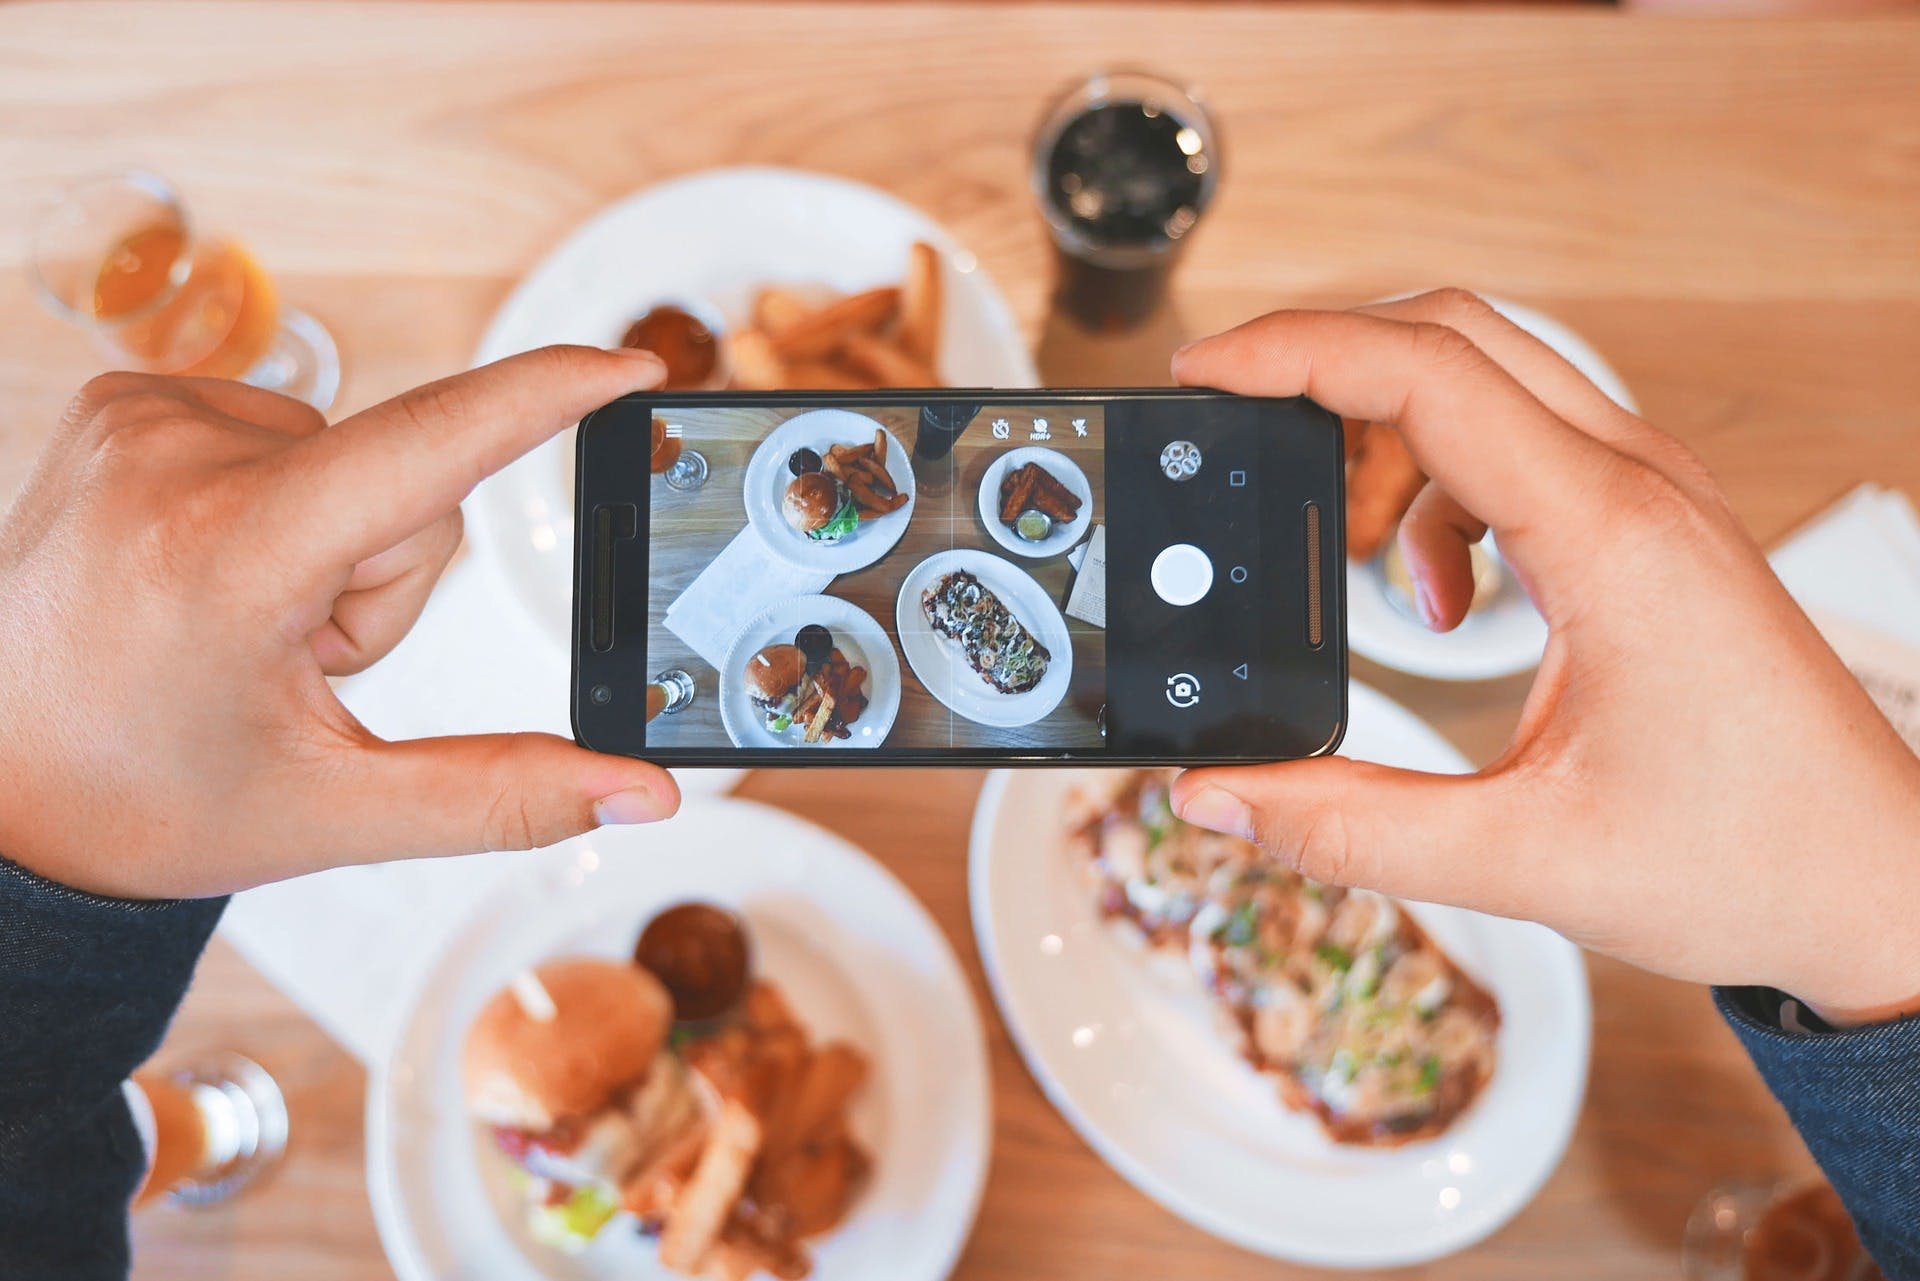 Person holding a phone and taking a picture of their food